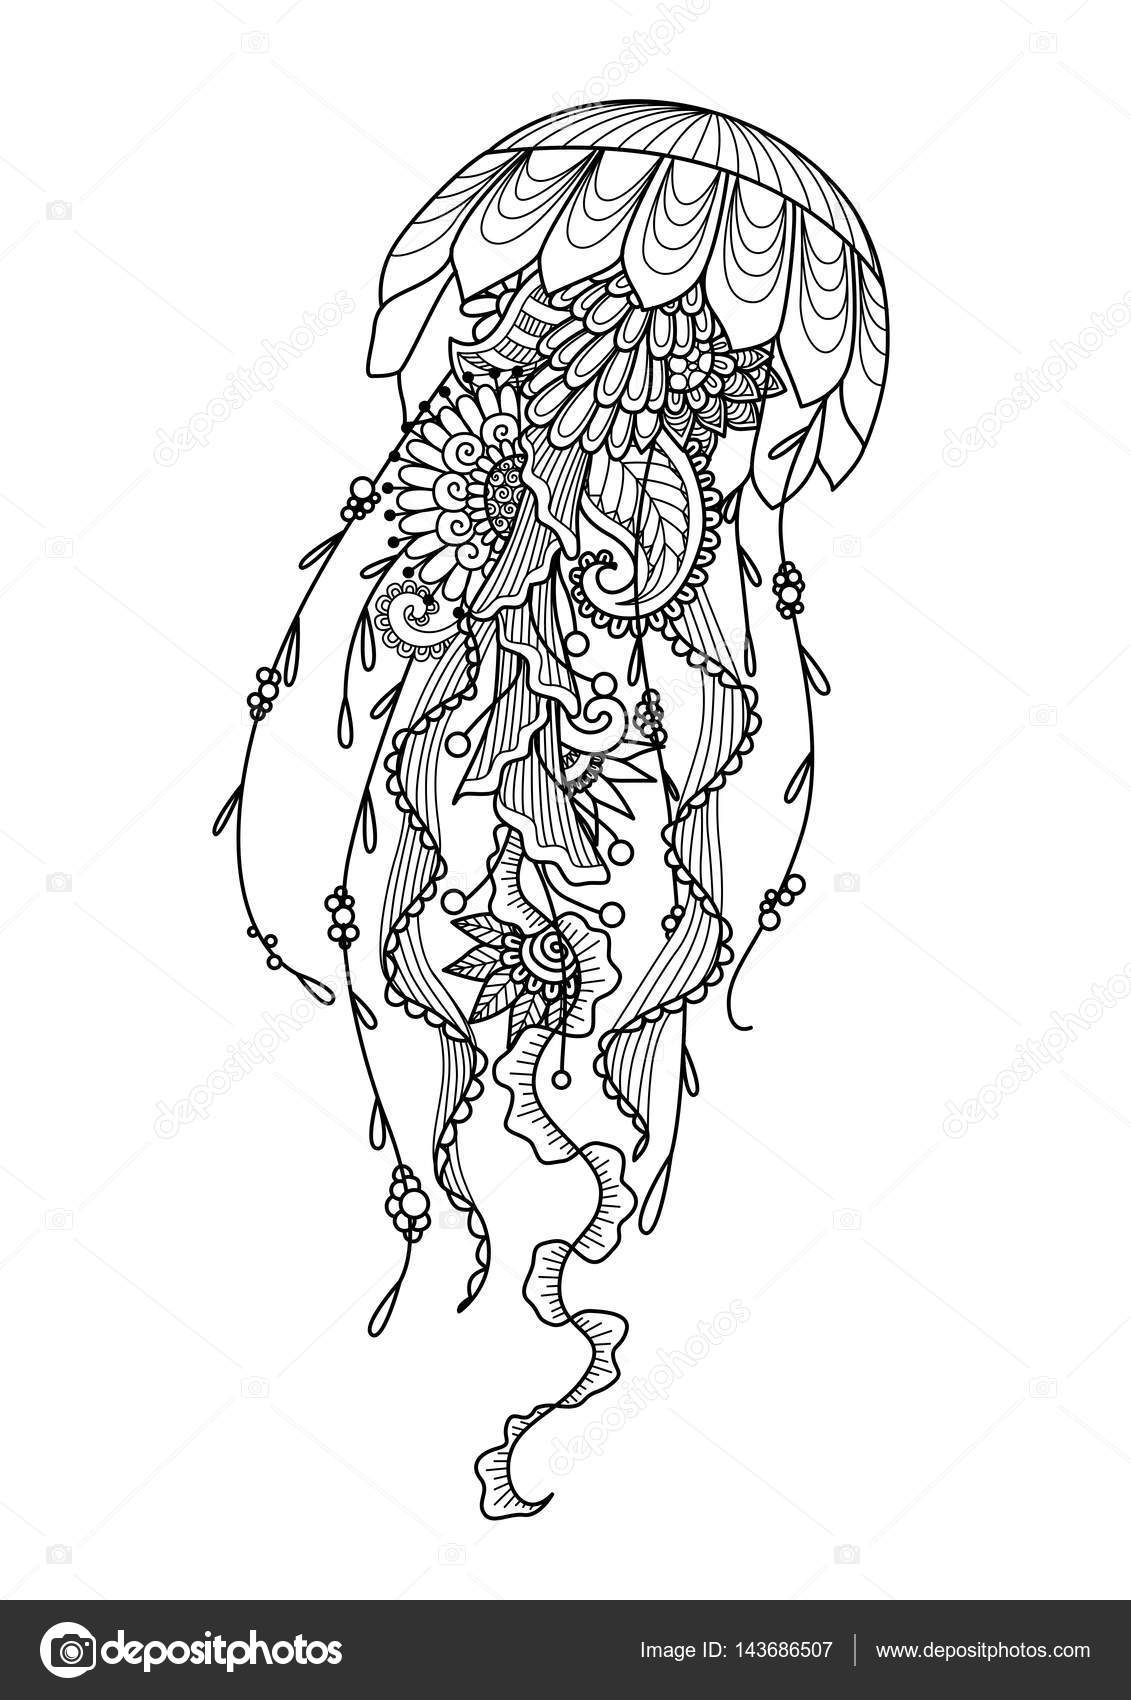 Zendoodle stylized jellyfish for